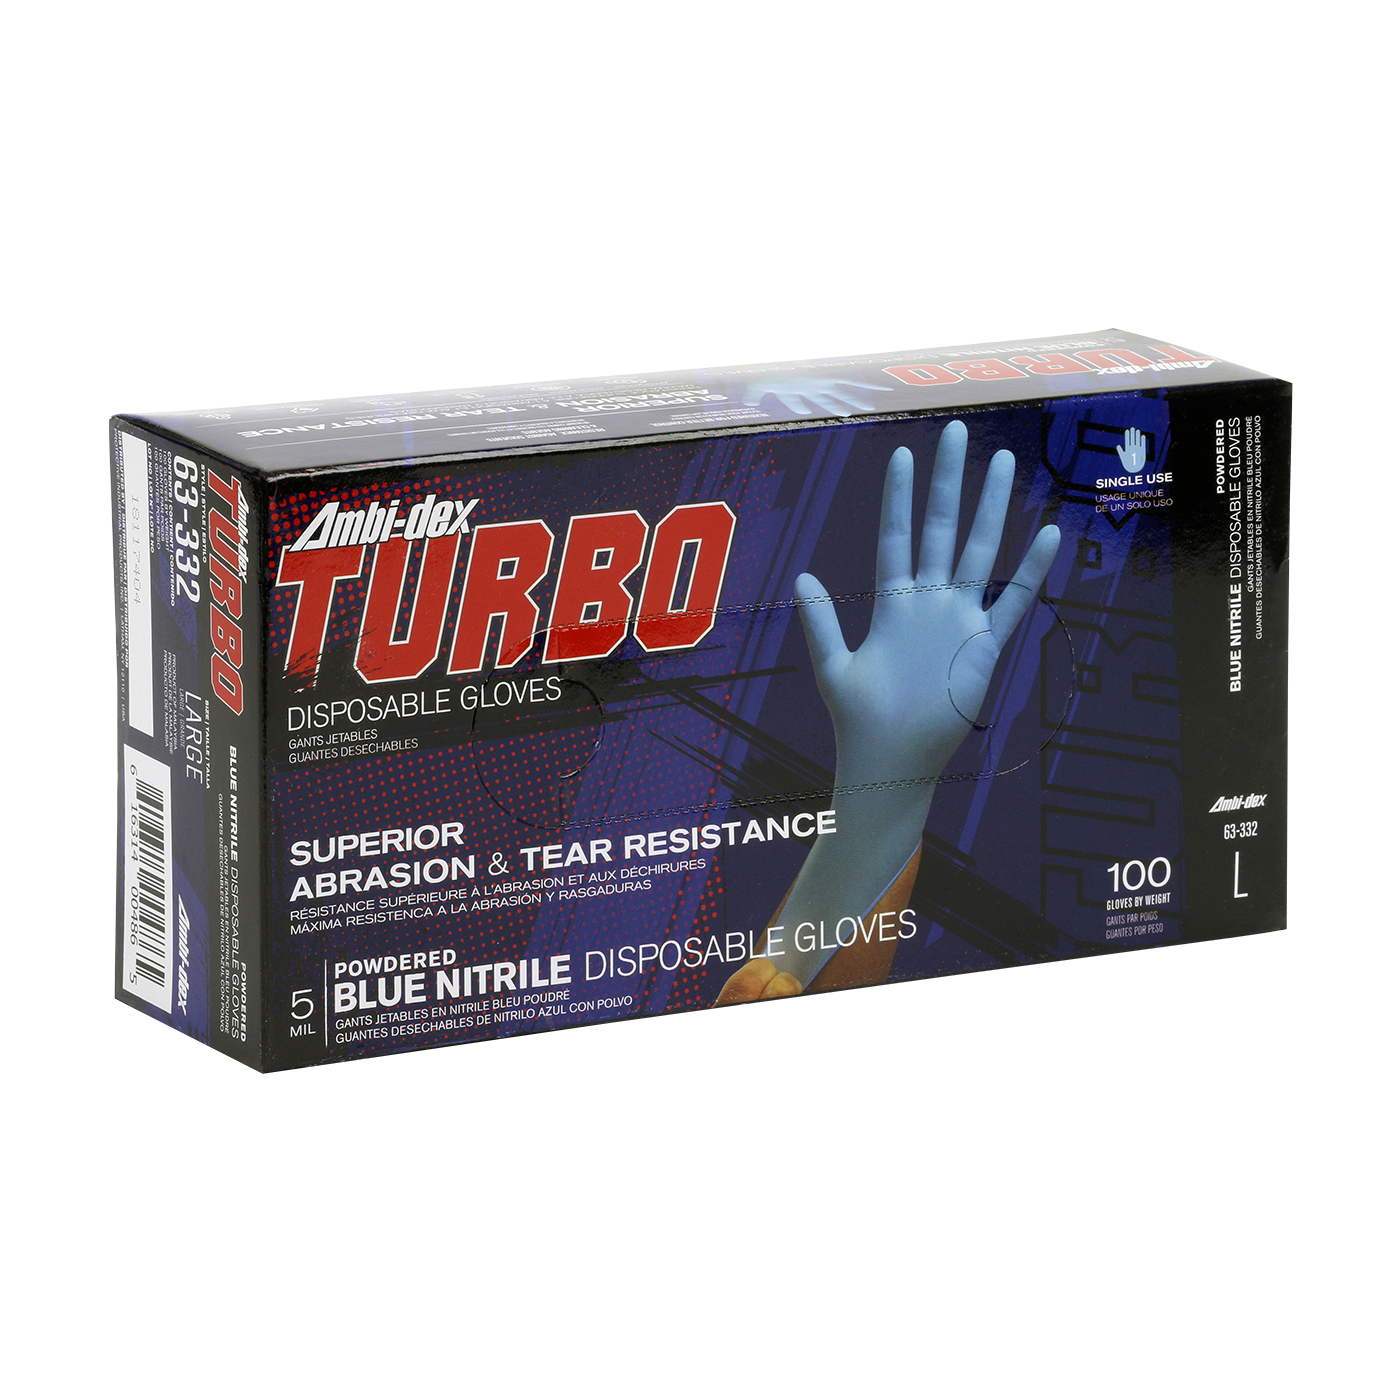 #63-332 PIP 5-Mil Ambi-dex® Turbo Industrial Disposable Powdered Nitrile Gloves